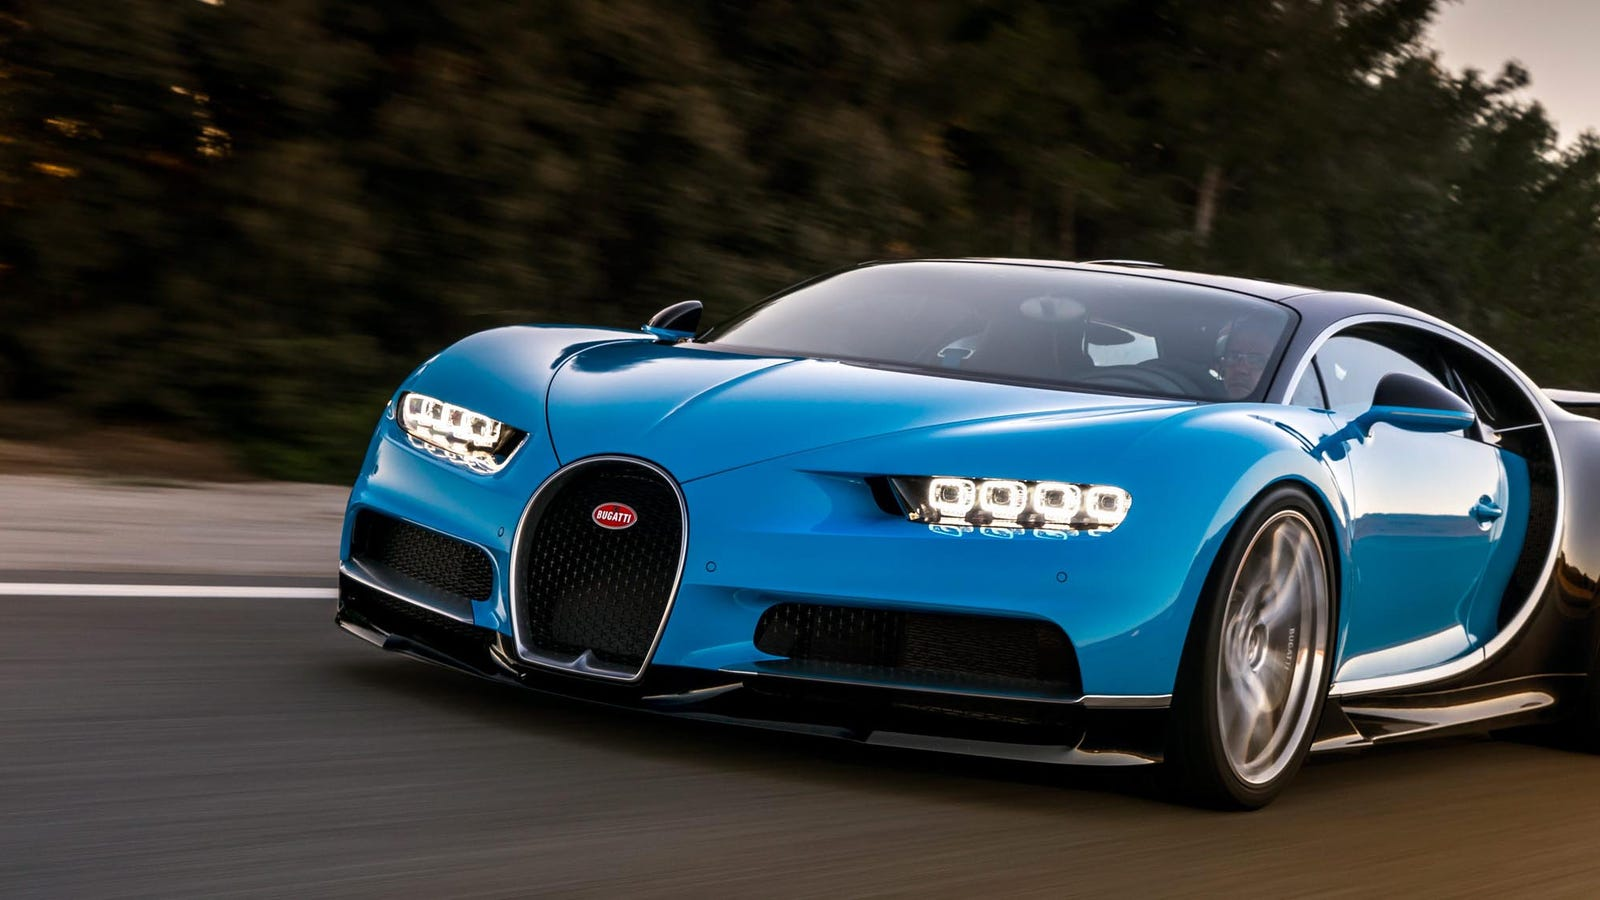 Superior The Incredible Tech In The New Bugatti Chiron, The Worldu0027s Most Powerful  Production Car